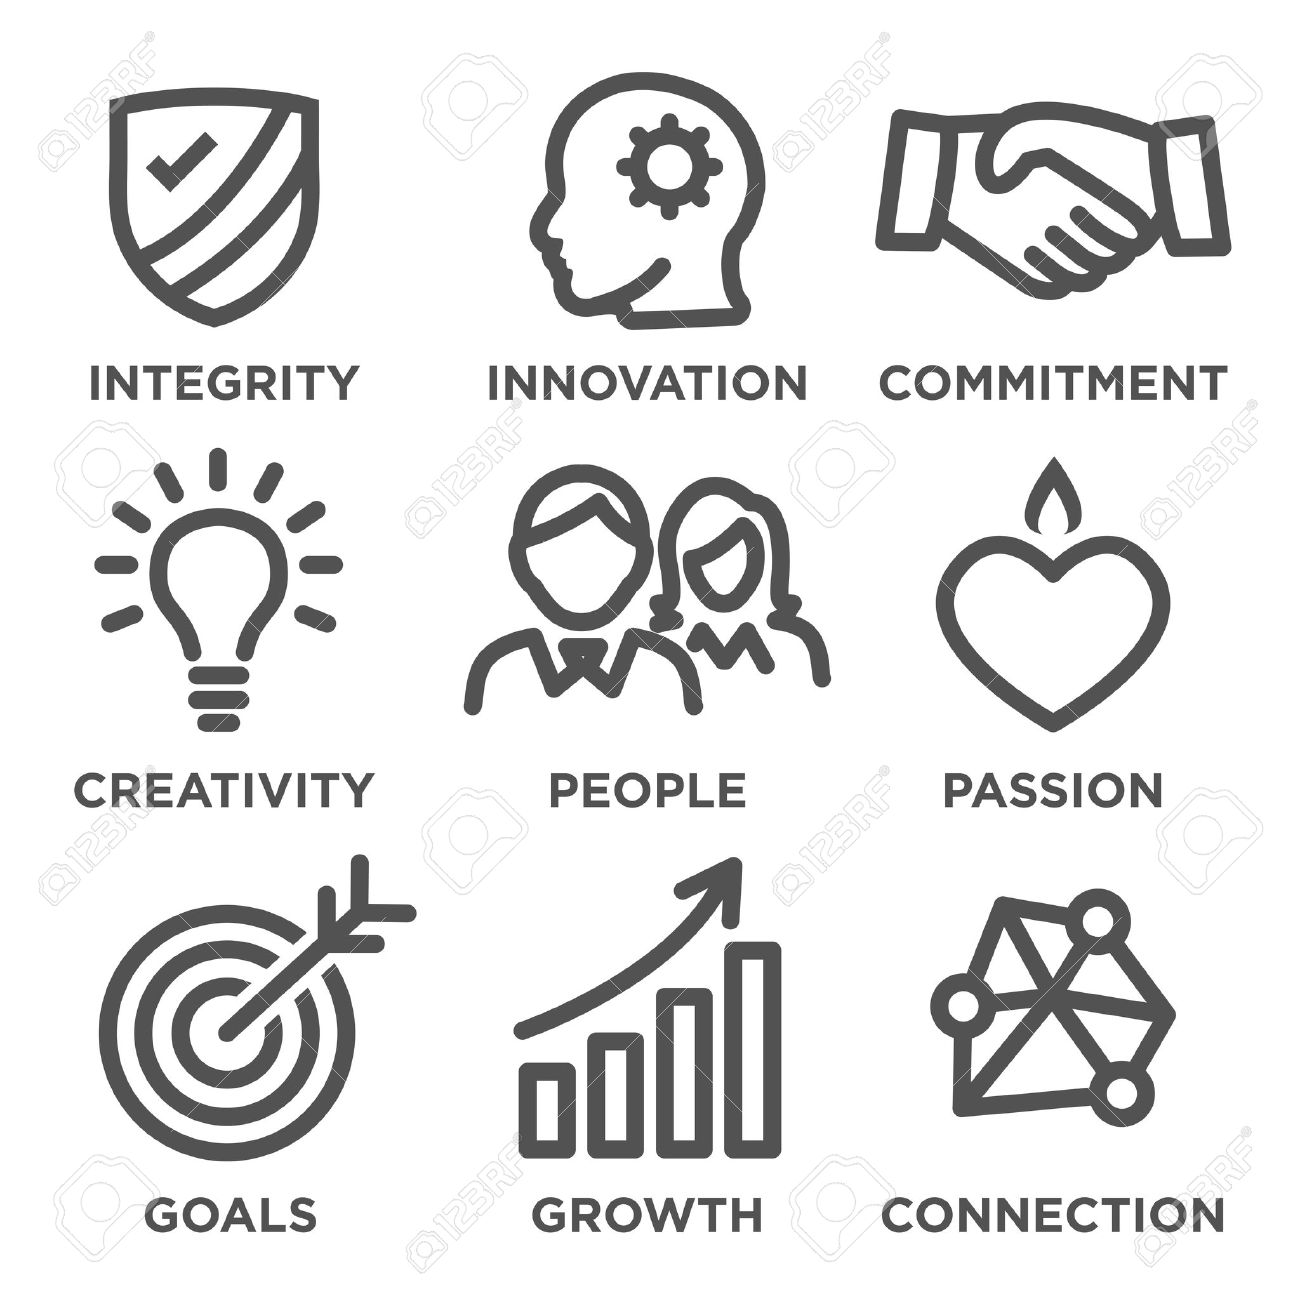 Company Core Values Outline Icons for Websites or Infographics - 57711734